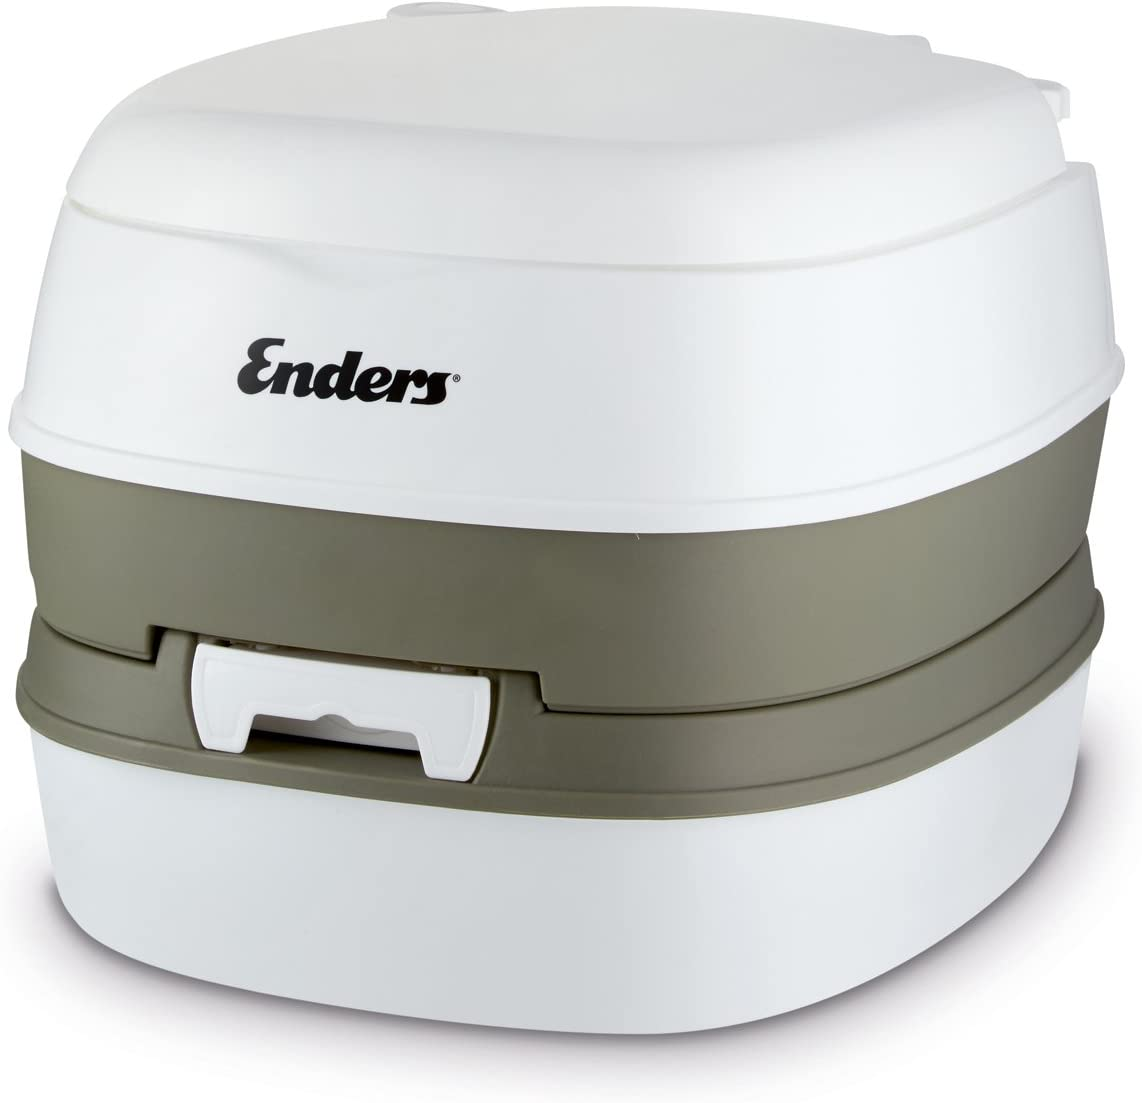 Enders Comfort-Camping Toilet, White